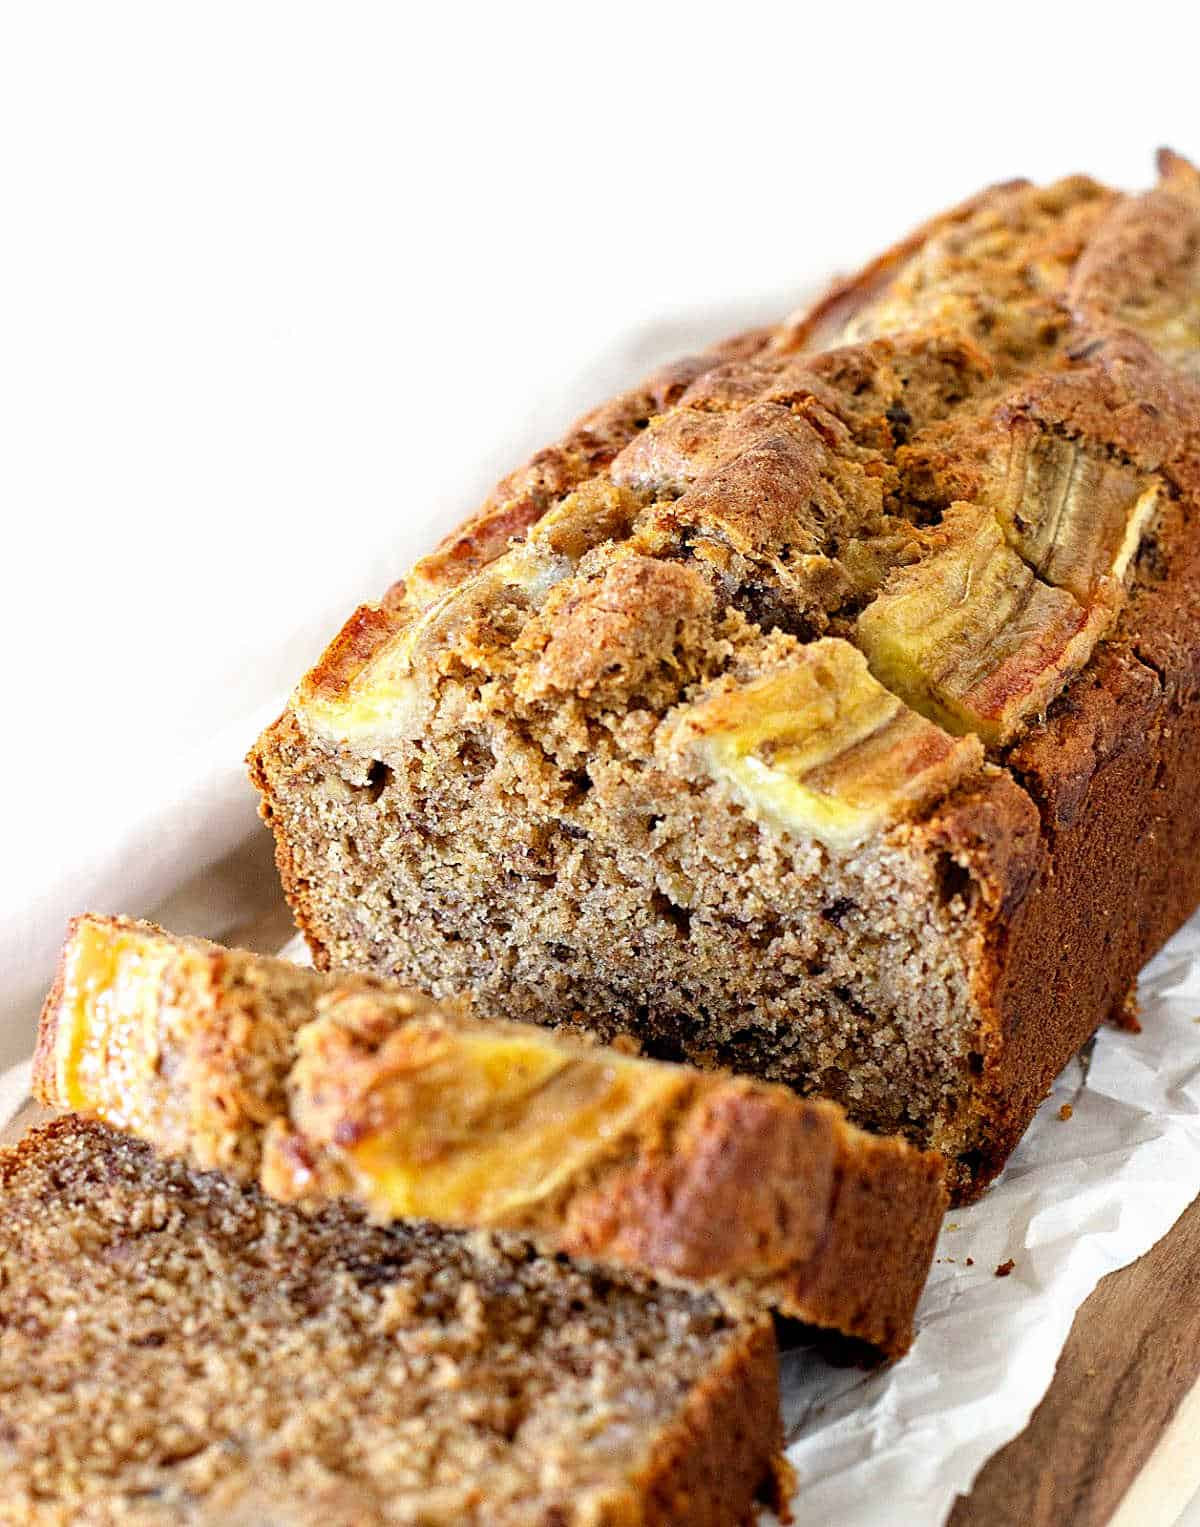 White parchment paper with loaf of banana bread with some cut slices, white background